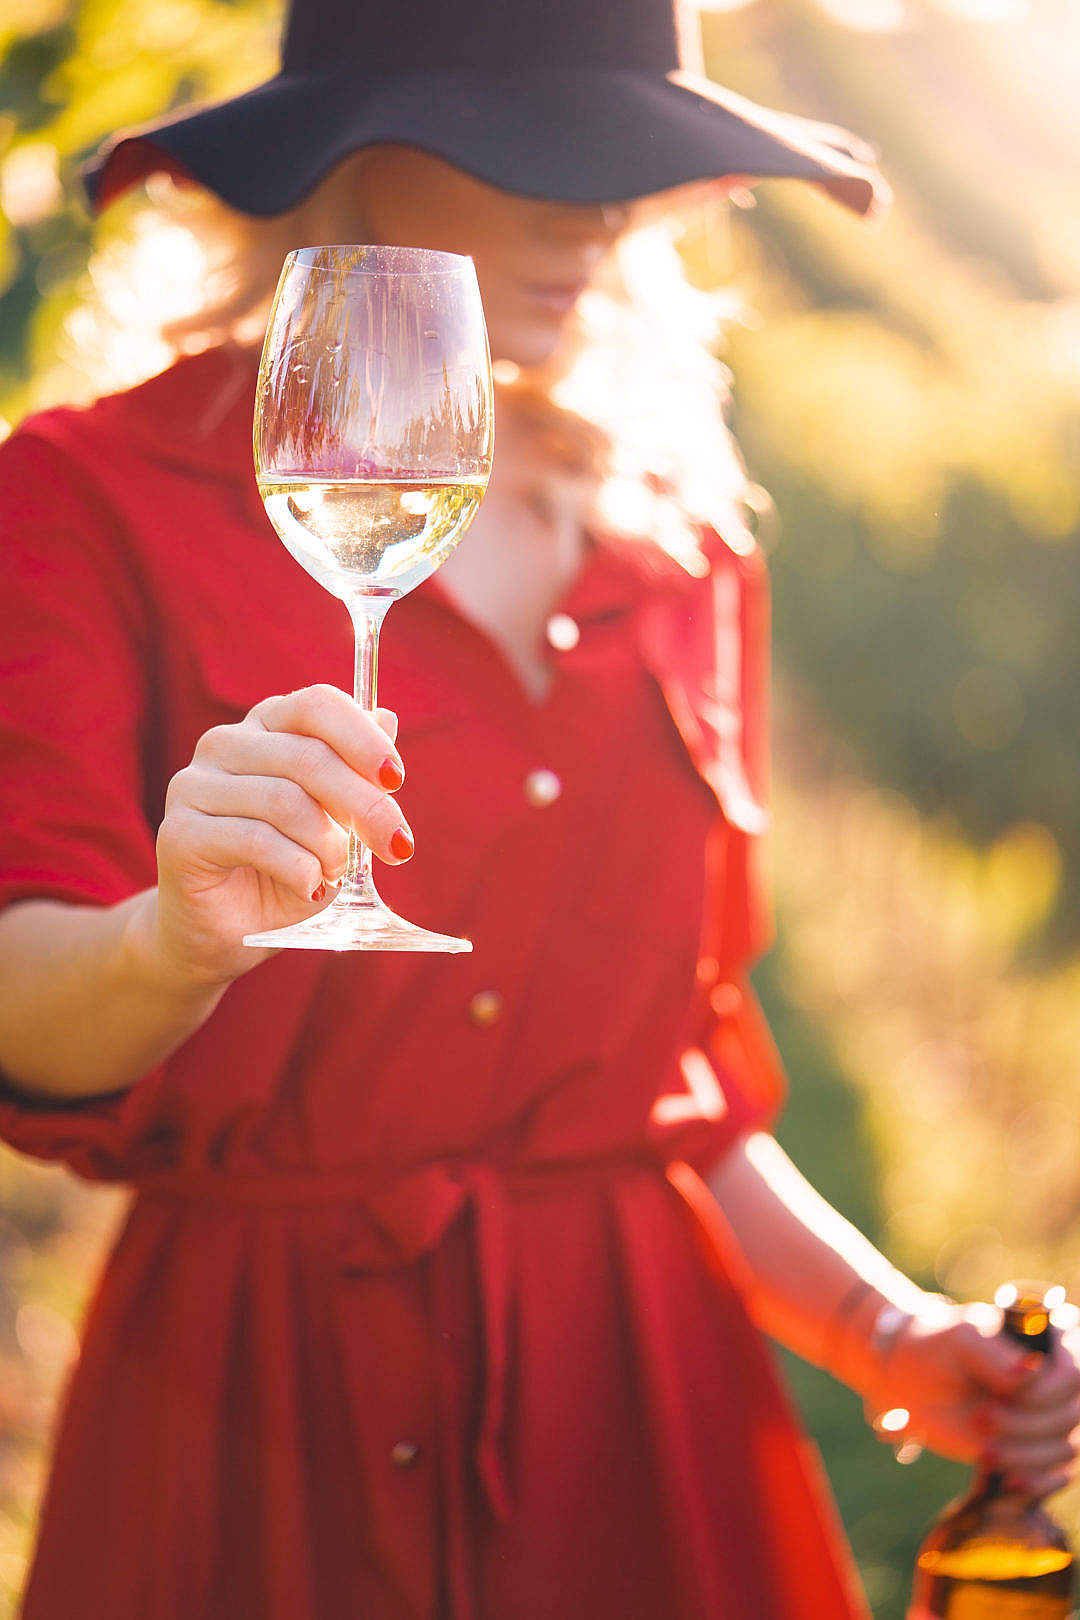 Download Beautiful Woman Holding a Glass of Wine FREE Stock Photo